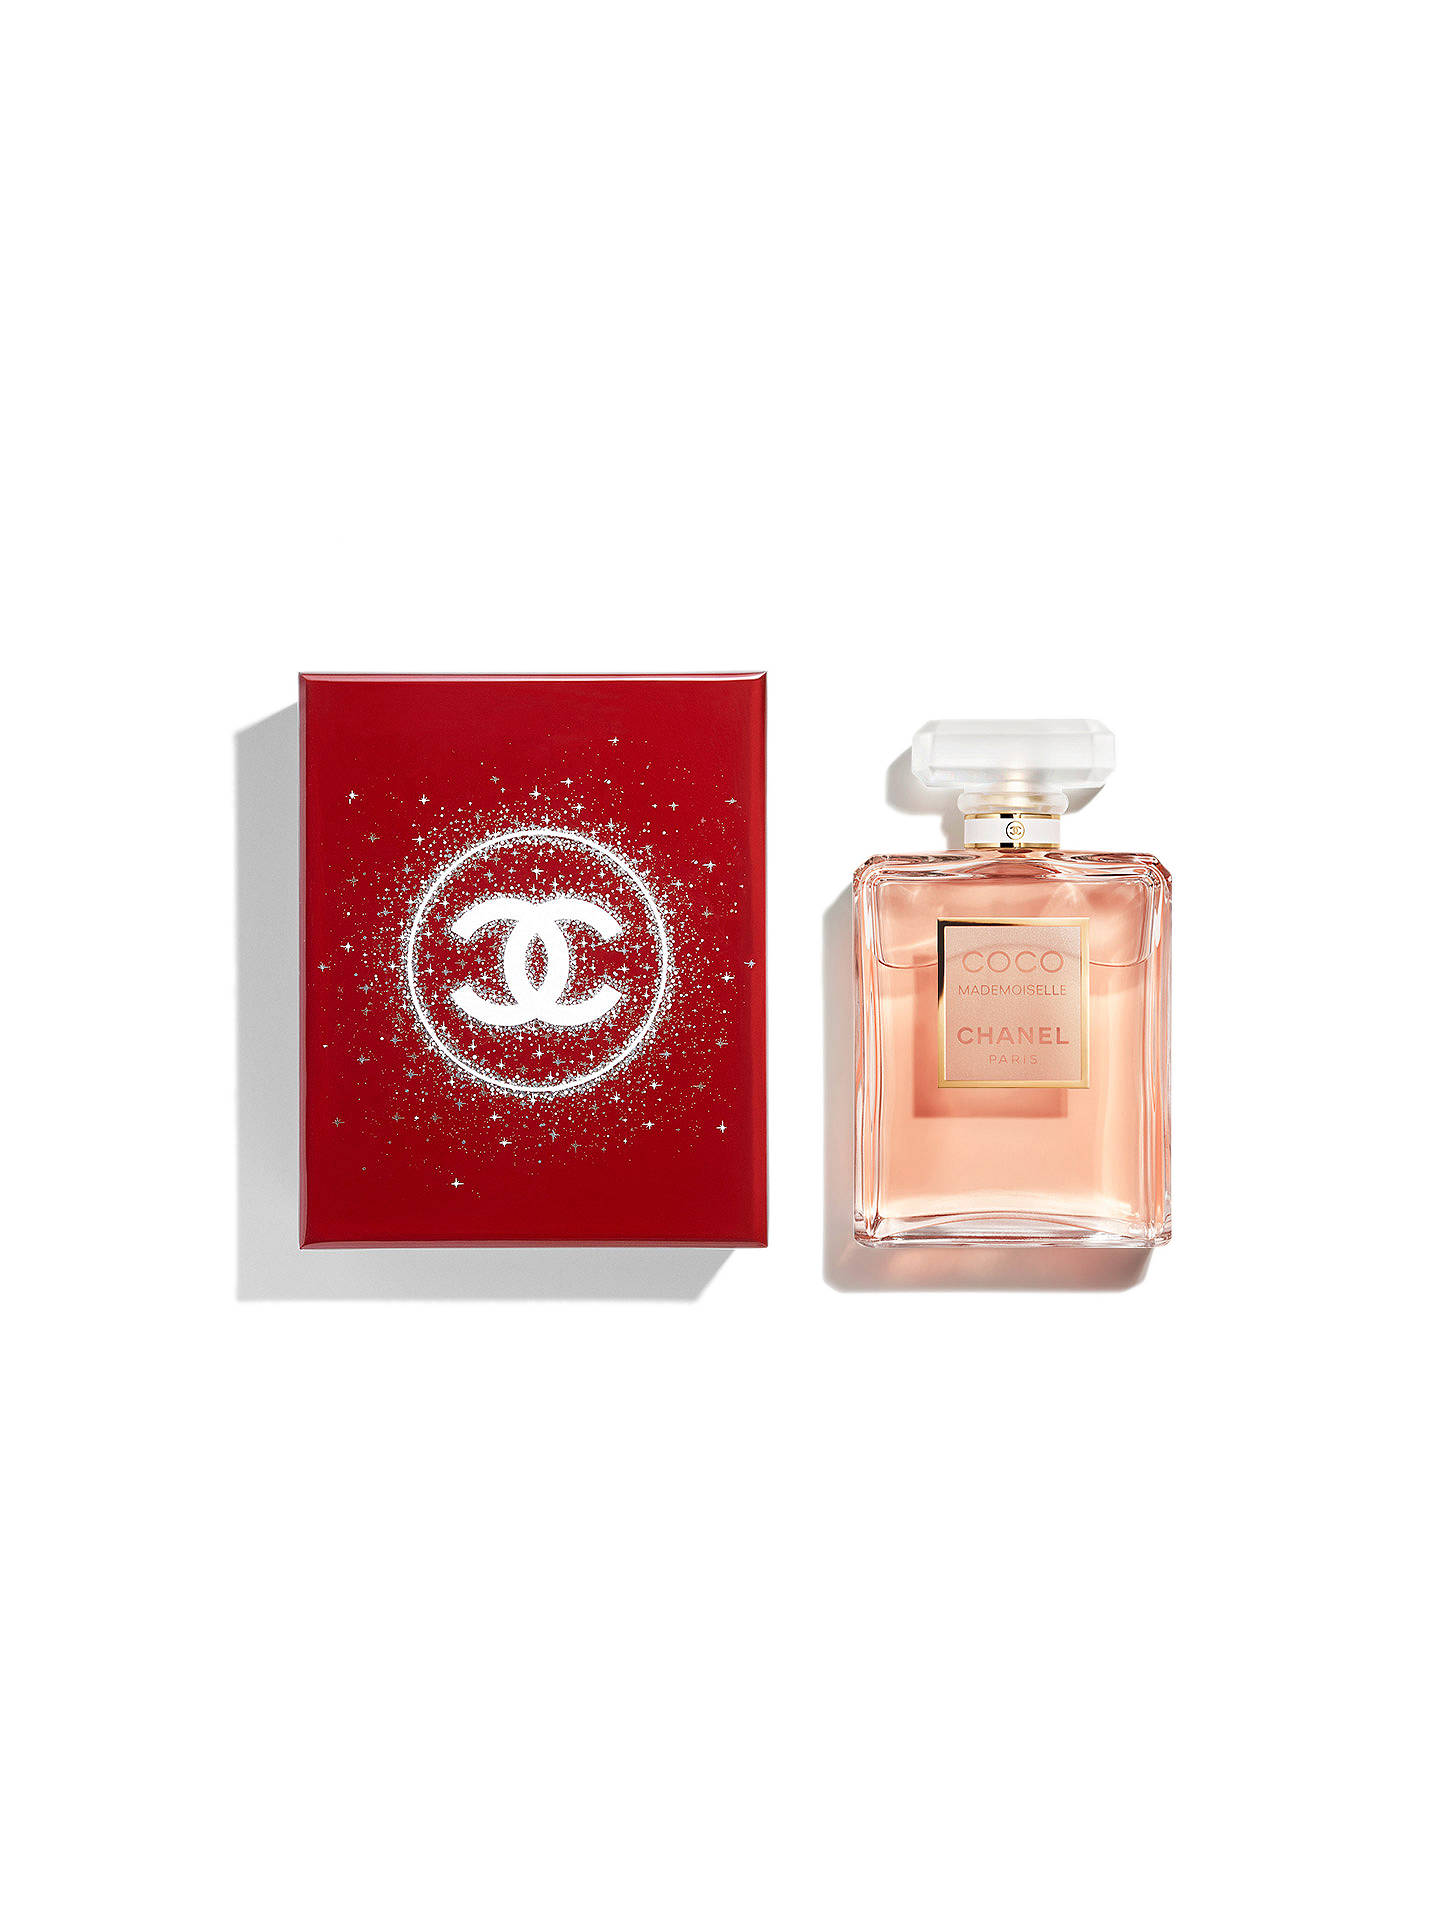 527008775e Buy CHANEL COCO MADEMOISELLE Eau de Parfum Spray, 100ml with Gift Box  Online at johnlewis